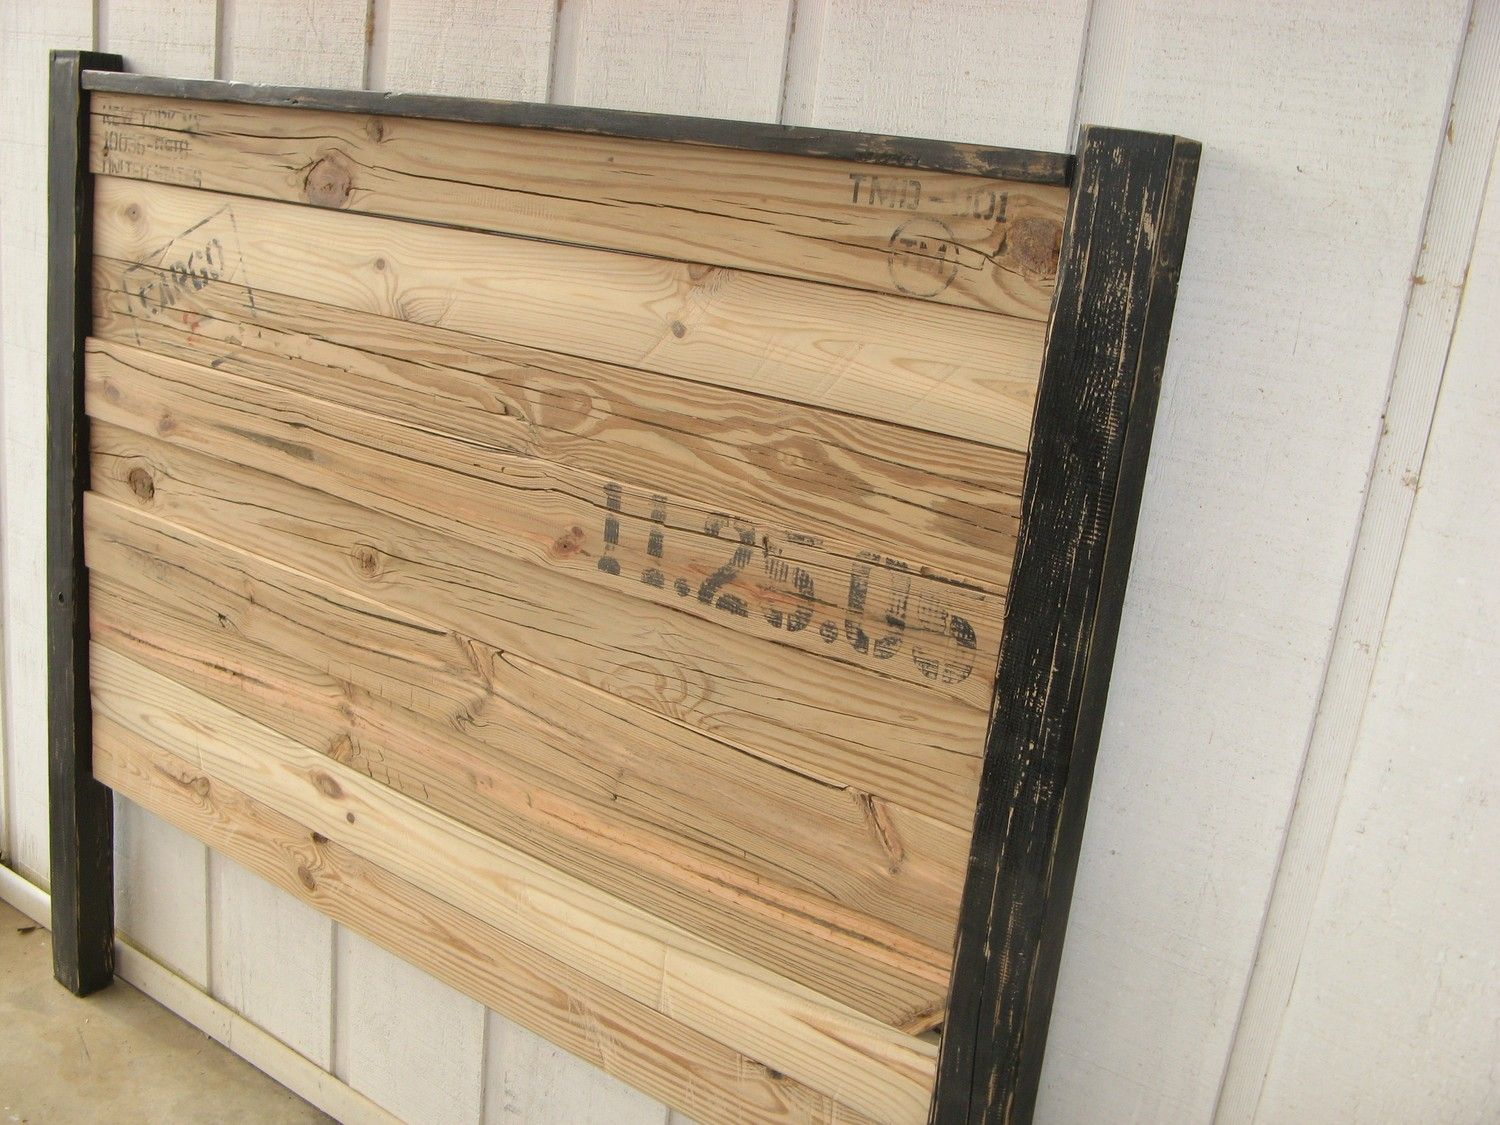 Queen Reclaimed Wood Headboard | Reclaimed wood headboard, Wood ...